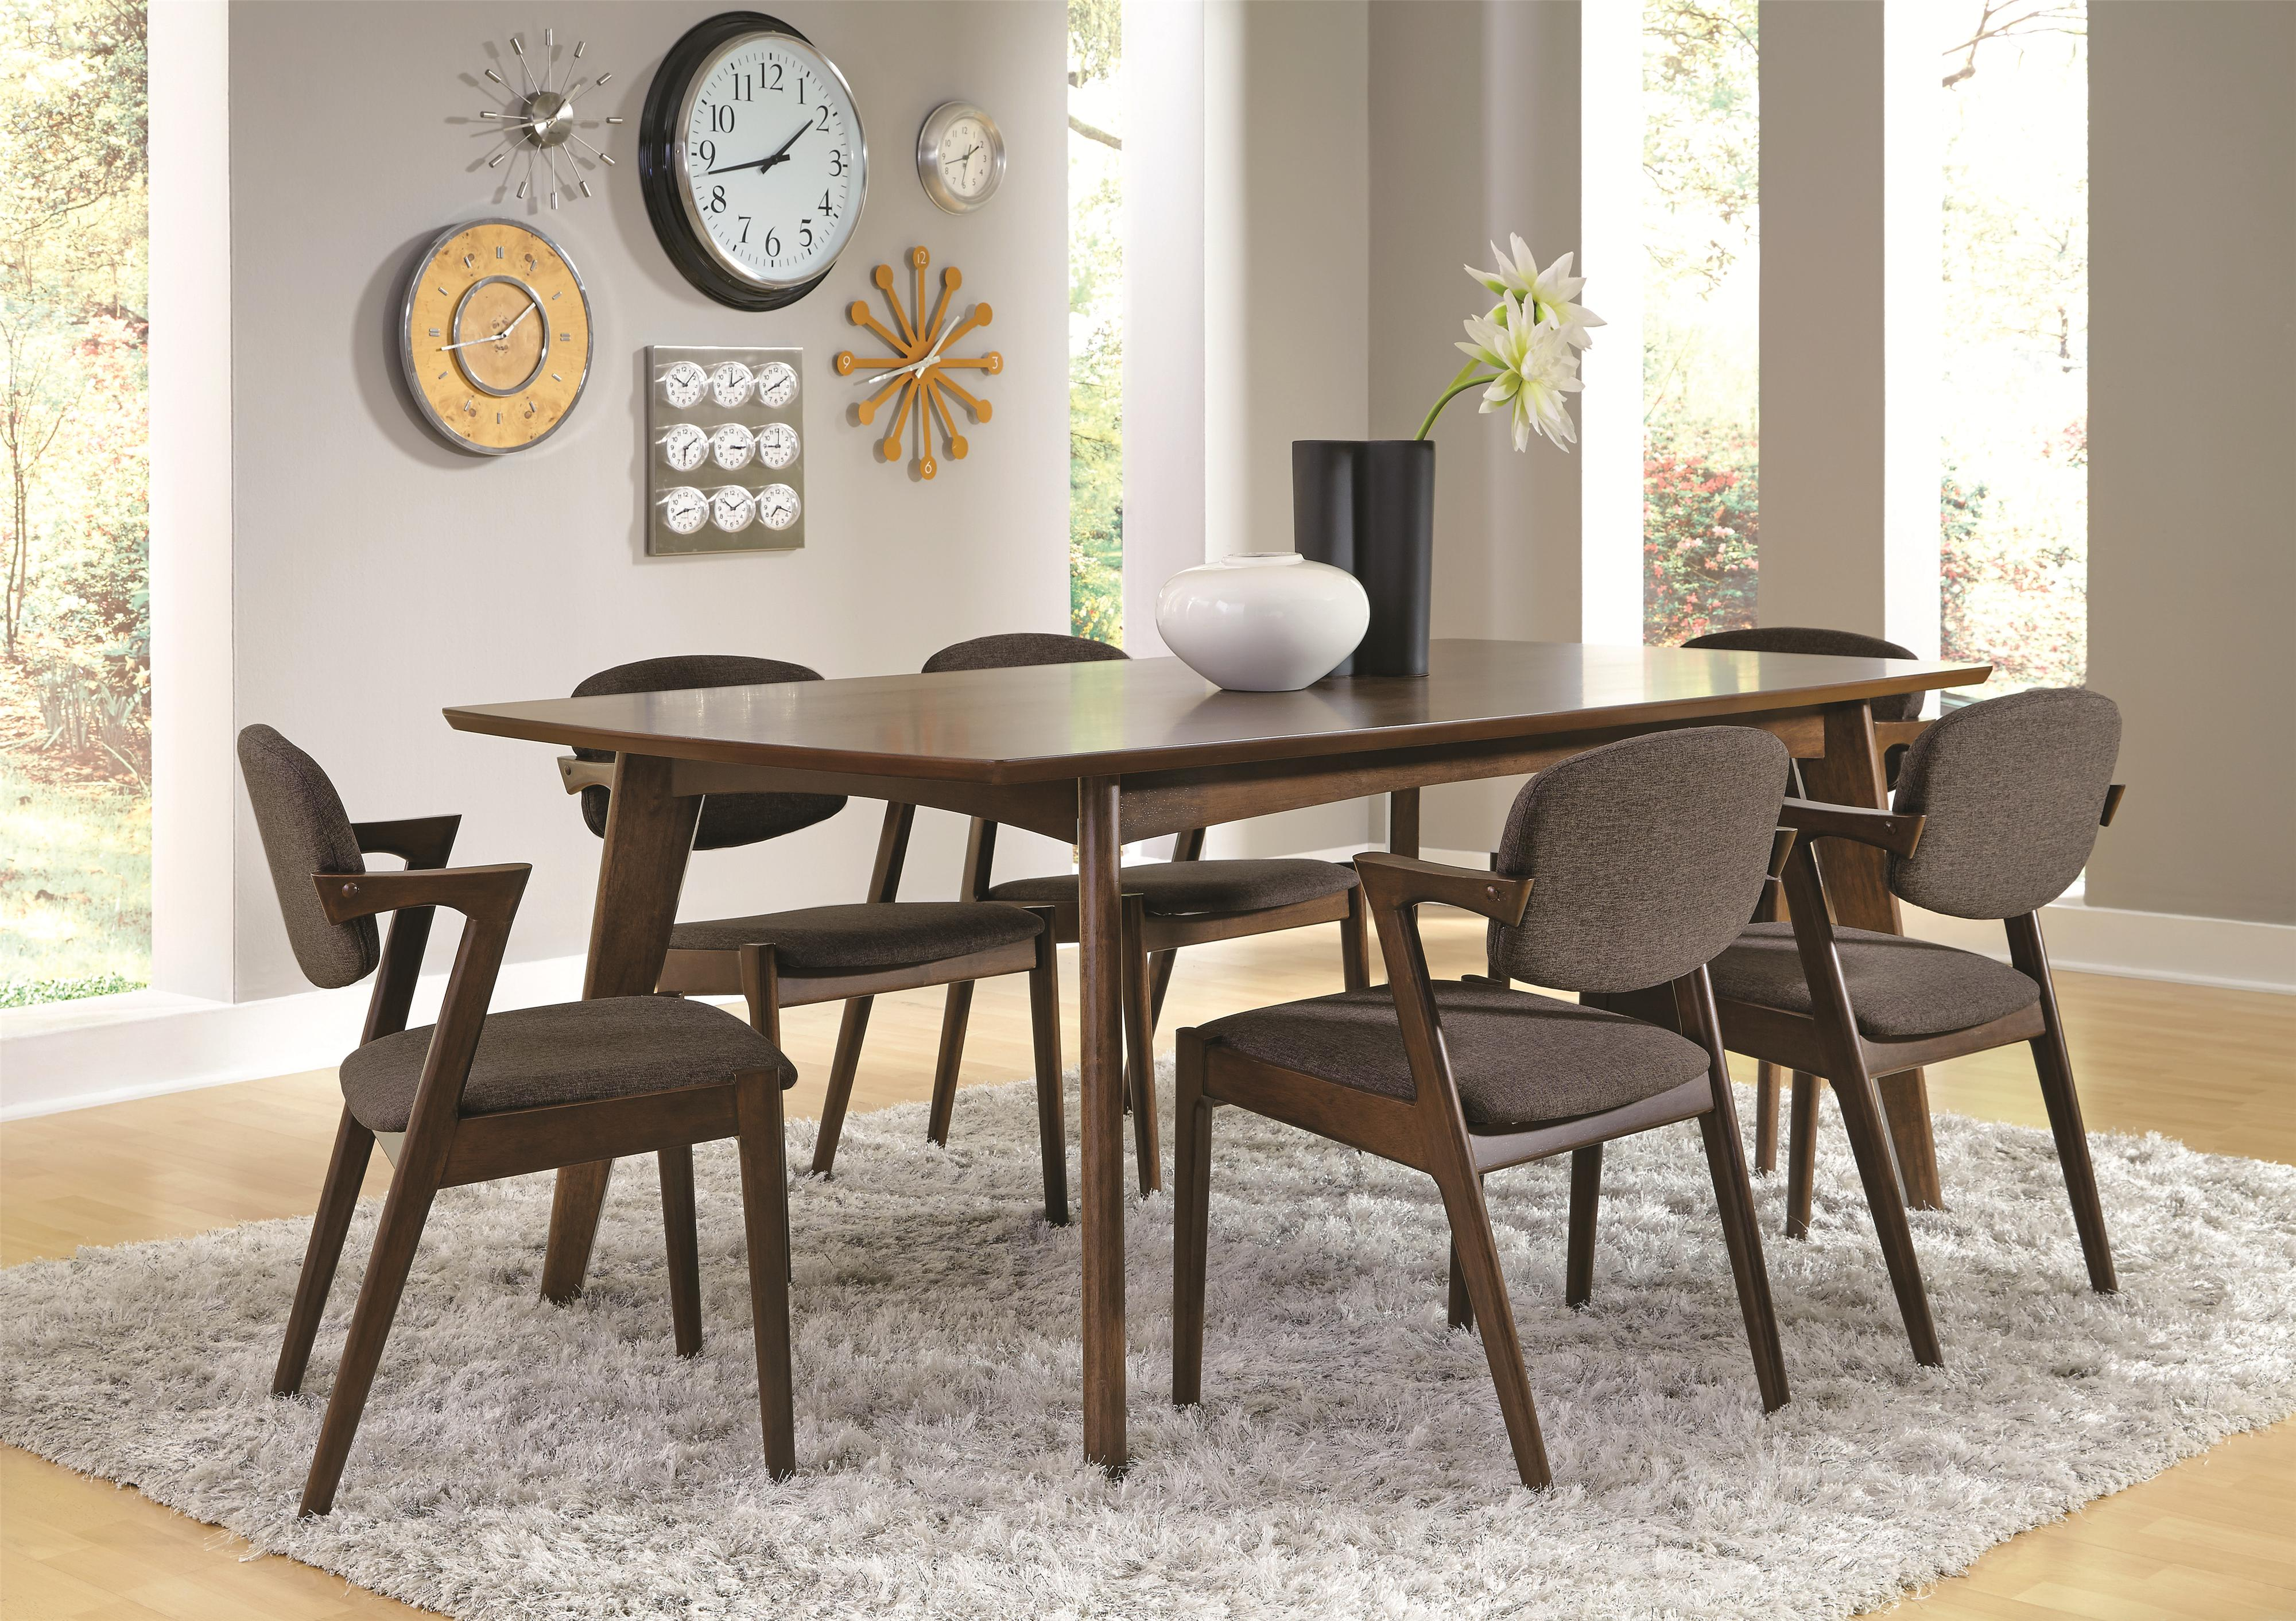 Coaster Malone 7 Piece Dining Set - Item Number 105351+6x52 & Coaster Malone Mid-century Modern 7-Piece Dining Set | Value City ...